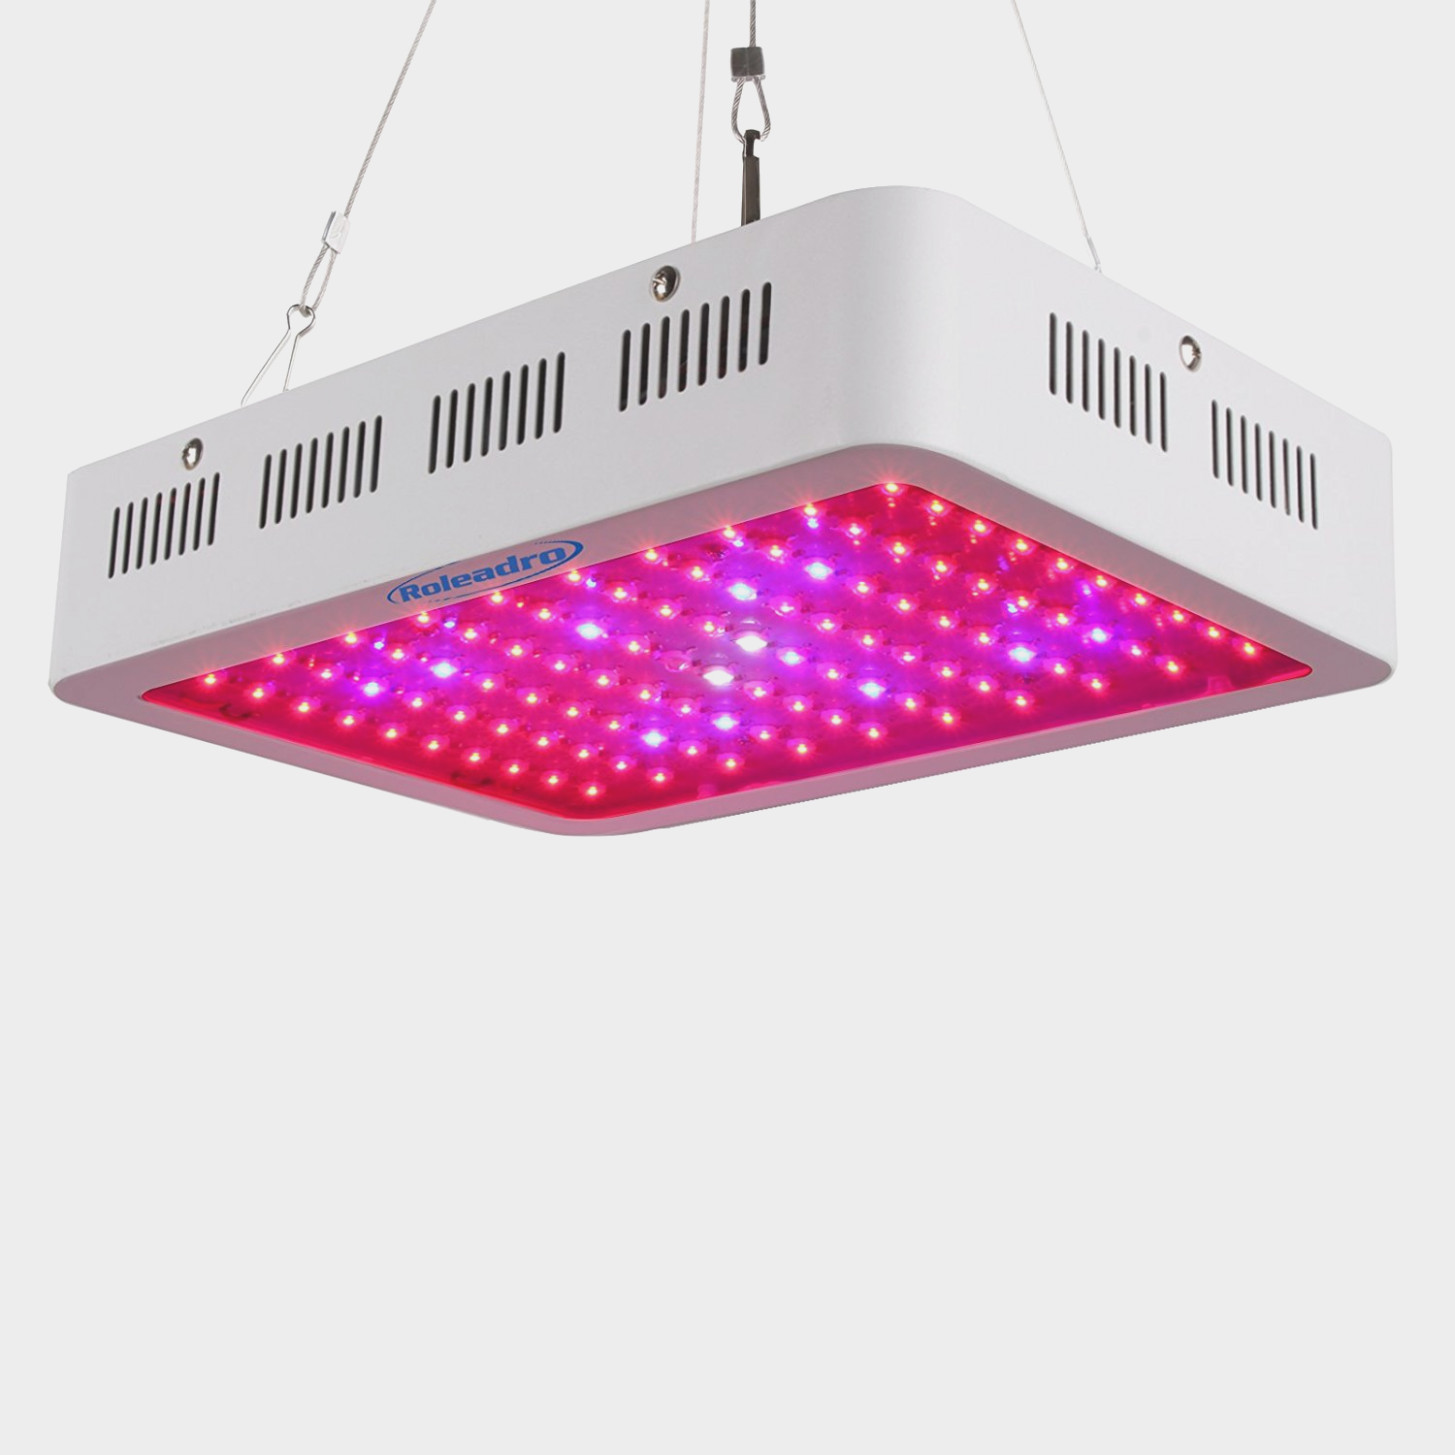 Led Grow Lampe  Led Grow Lampe Test Andere welten